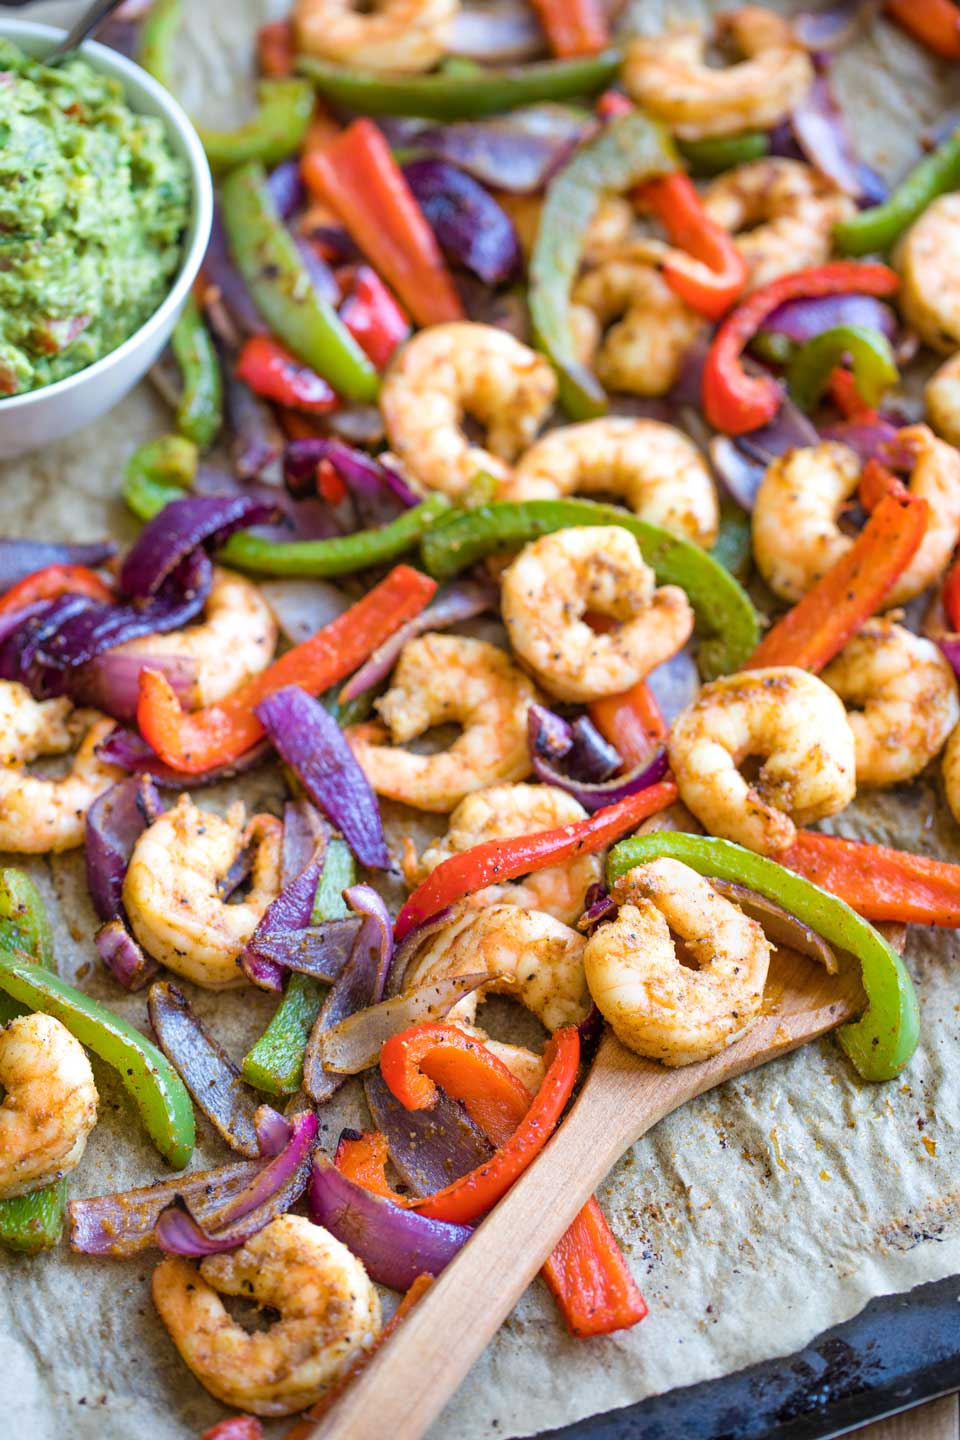 Cooked Mexican shrimp and vegetables, still on the sheet pan, with a wooden spoon scooping in and a bowl of guac nearby.